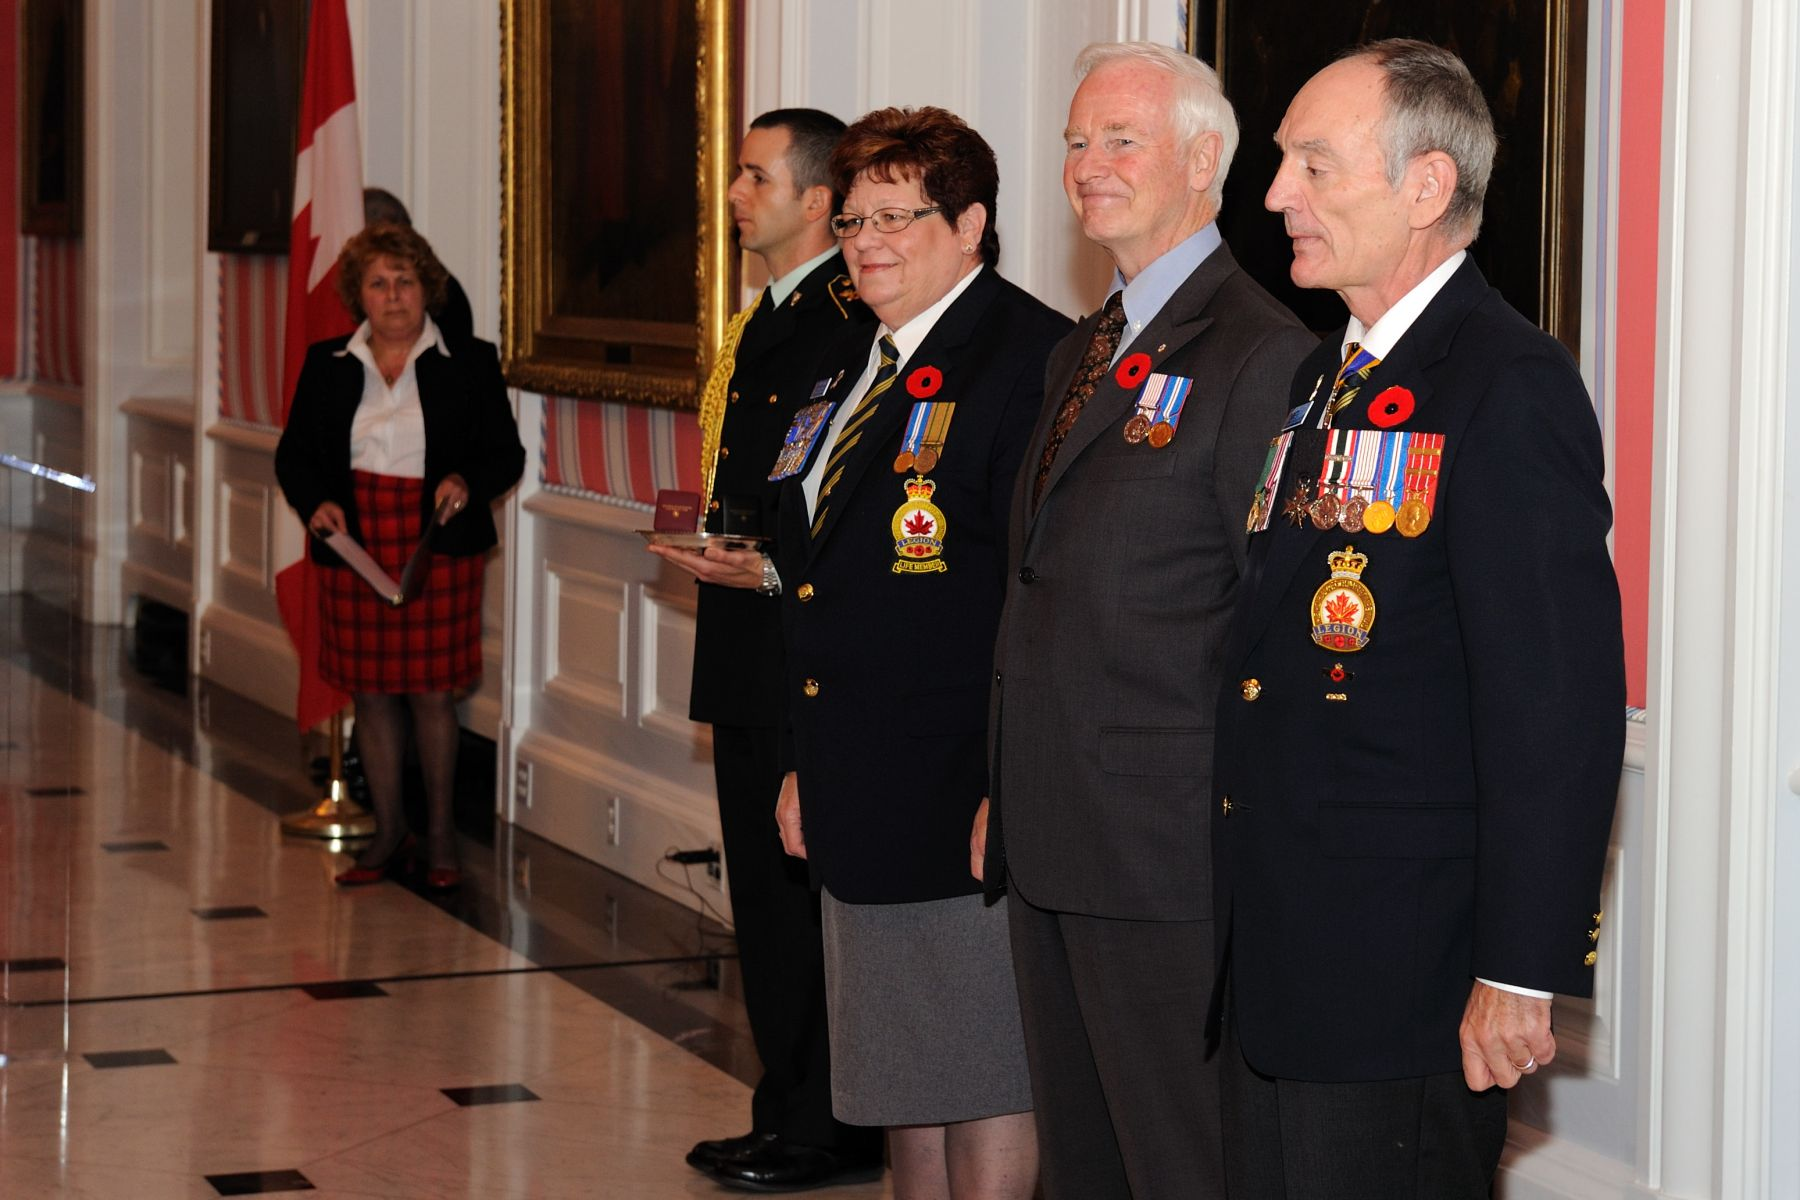 His Excellency, Ms. Varga and Mr. Murray received the first poppy of the 2010 National Campaign. Poppies will be available to the general public beginning October 29, 2010.